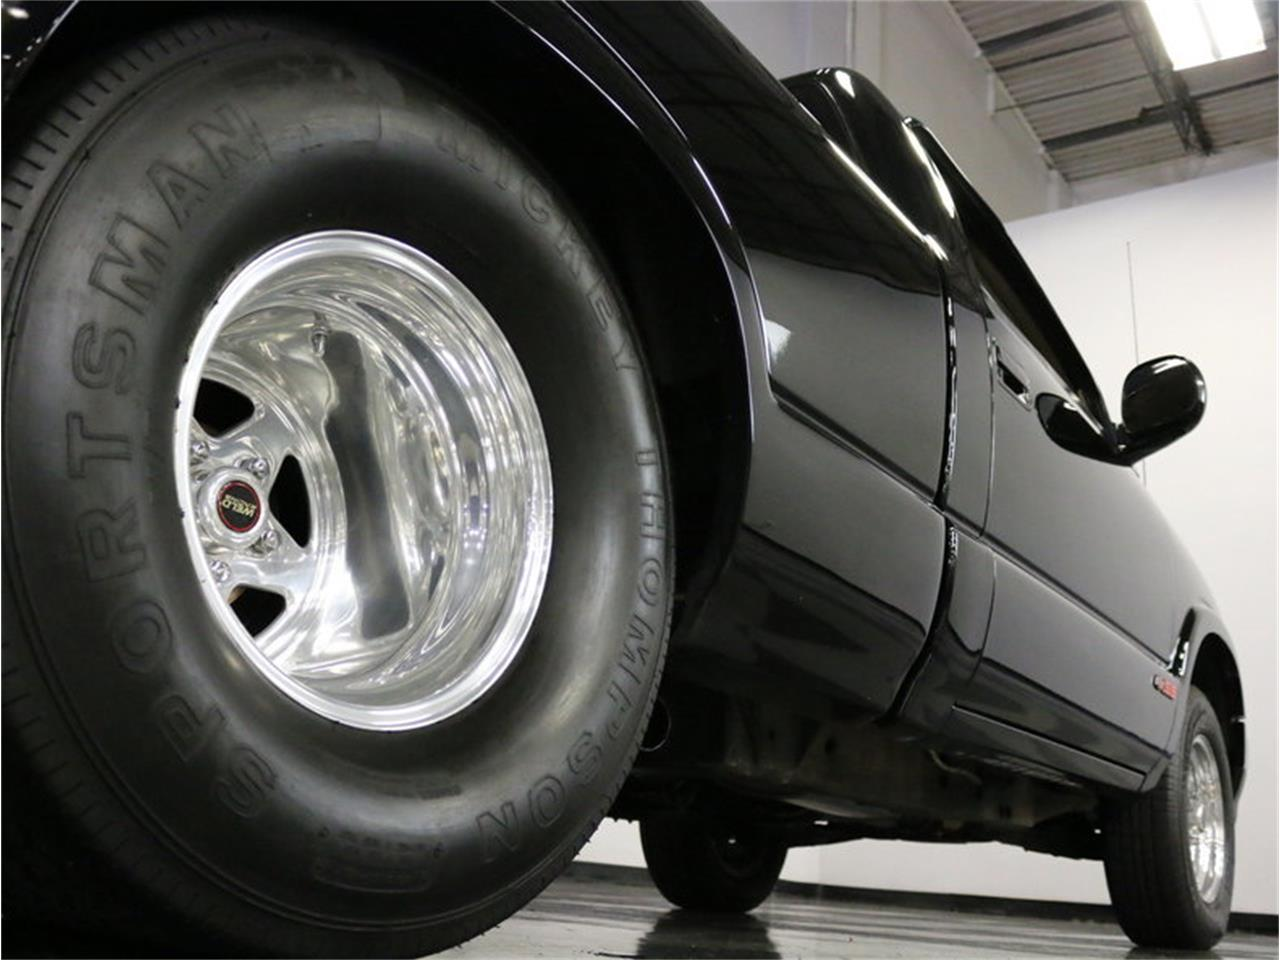 Large Picture of '95 S-10 SS Pro Street located in Ft Worth Texas - $17,995.00 Offered by Streetside Classics - Dallas / Fort Worth - MOBZ